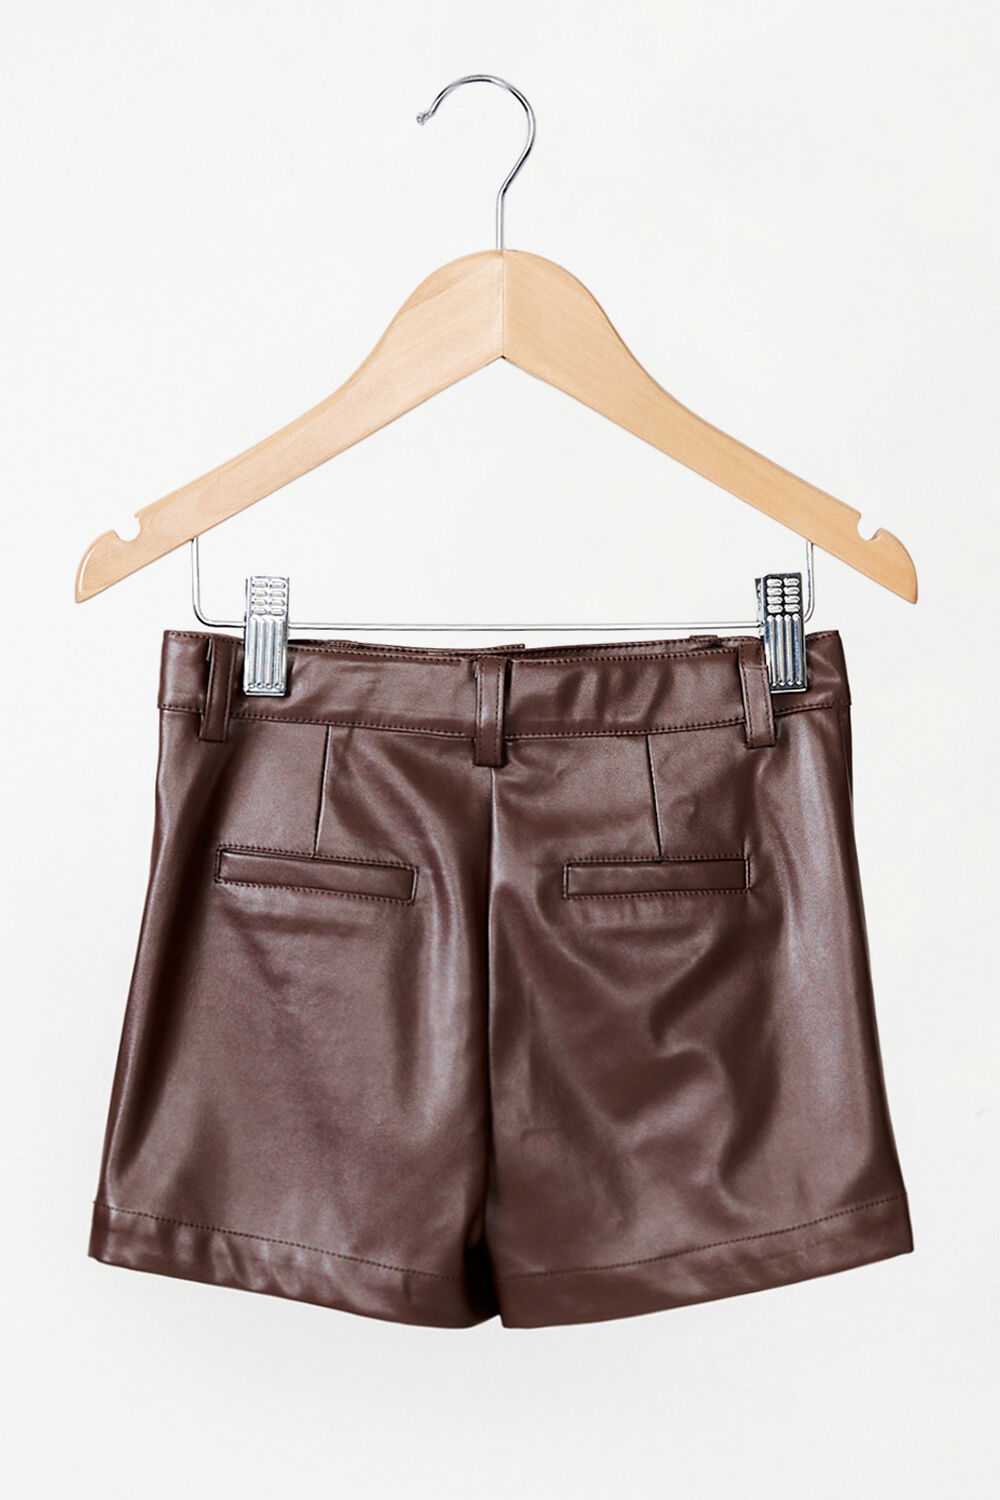 GIRLS VEGAN LEATHER BELLE VEGAN LEATHER SHORT in colour CHOCOLATE BROWN